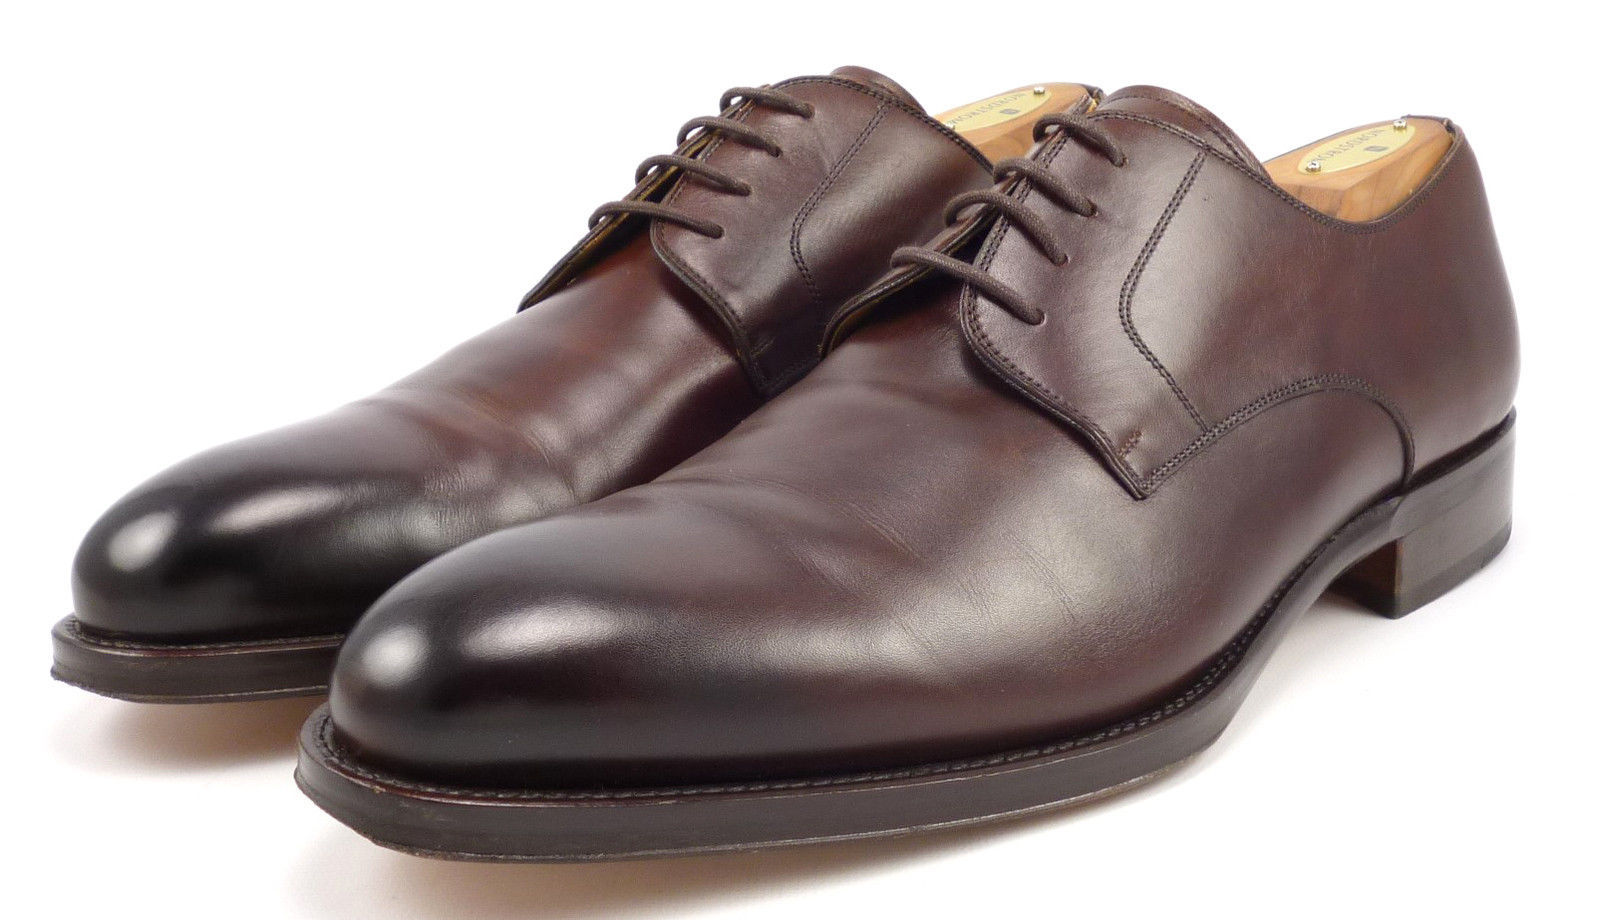 magnanni s shoes size 11 5 us burnished leather